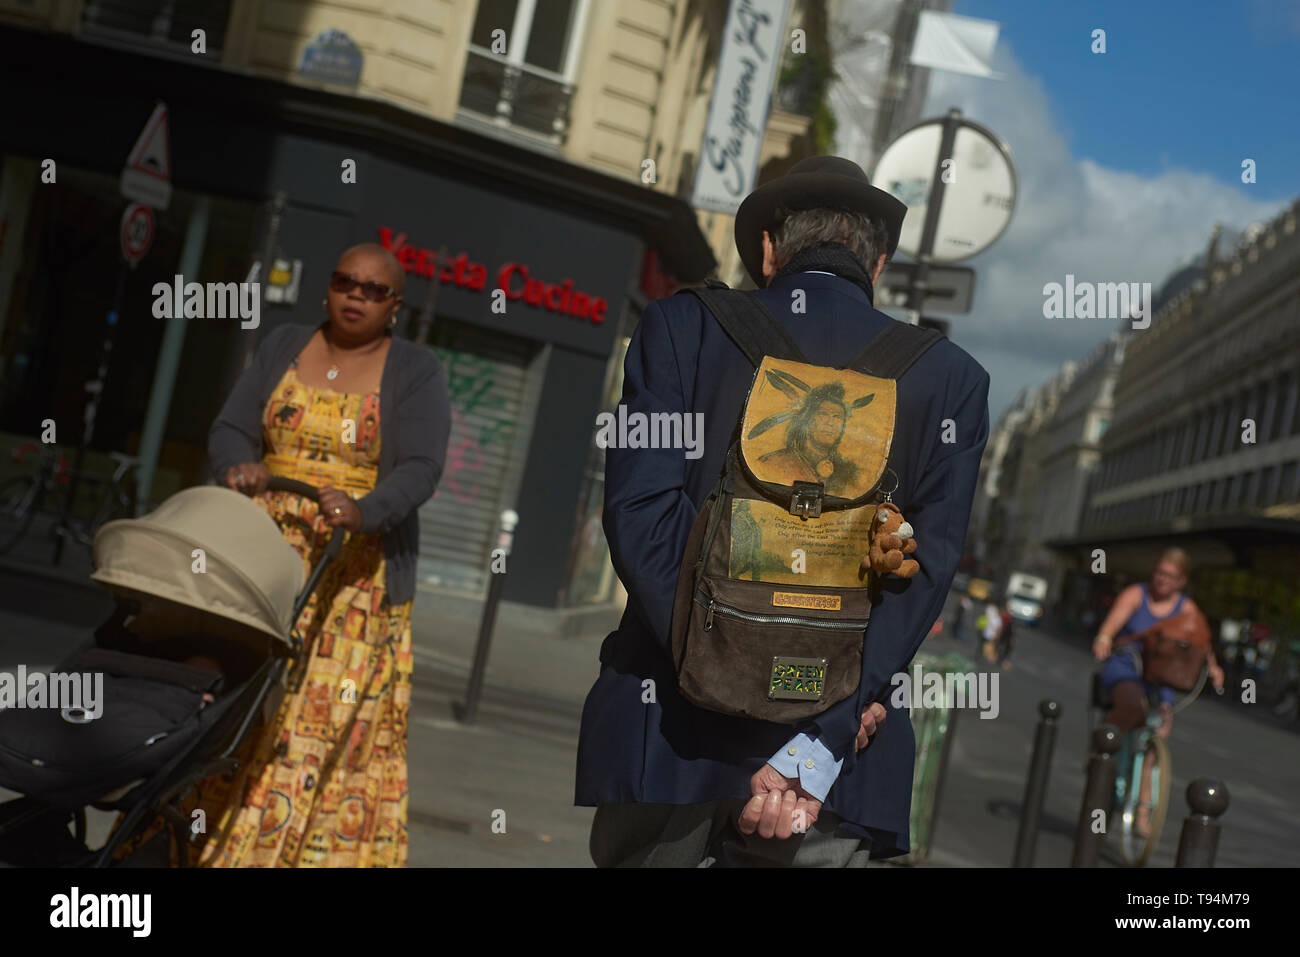 A man strolling and walking in the city centre of Paris exploring the city and its sights Stock Photo